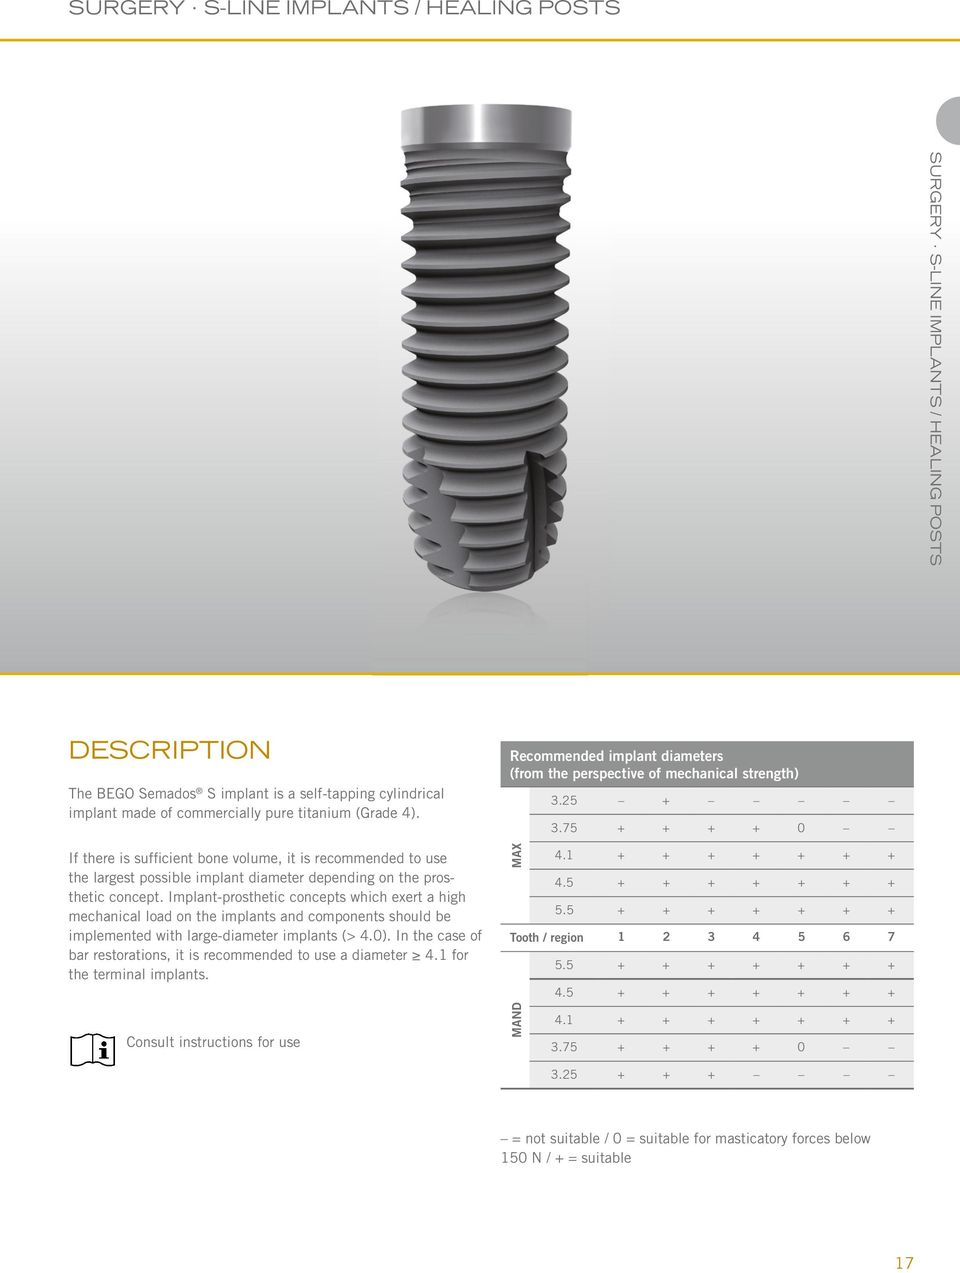 Implant-prosthetic concepts which exert a high mechanical load on the implants and components should be implemented with large-diameter implants (> 4.0).